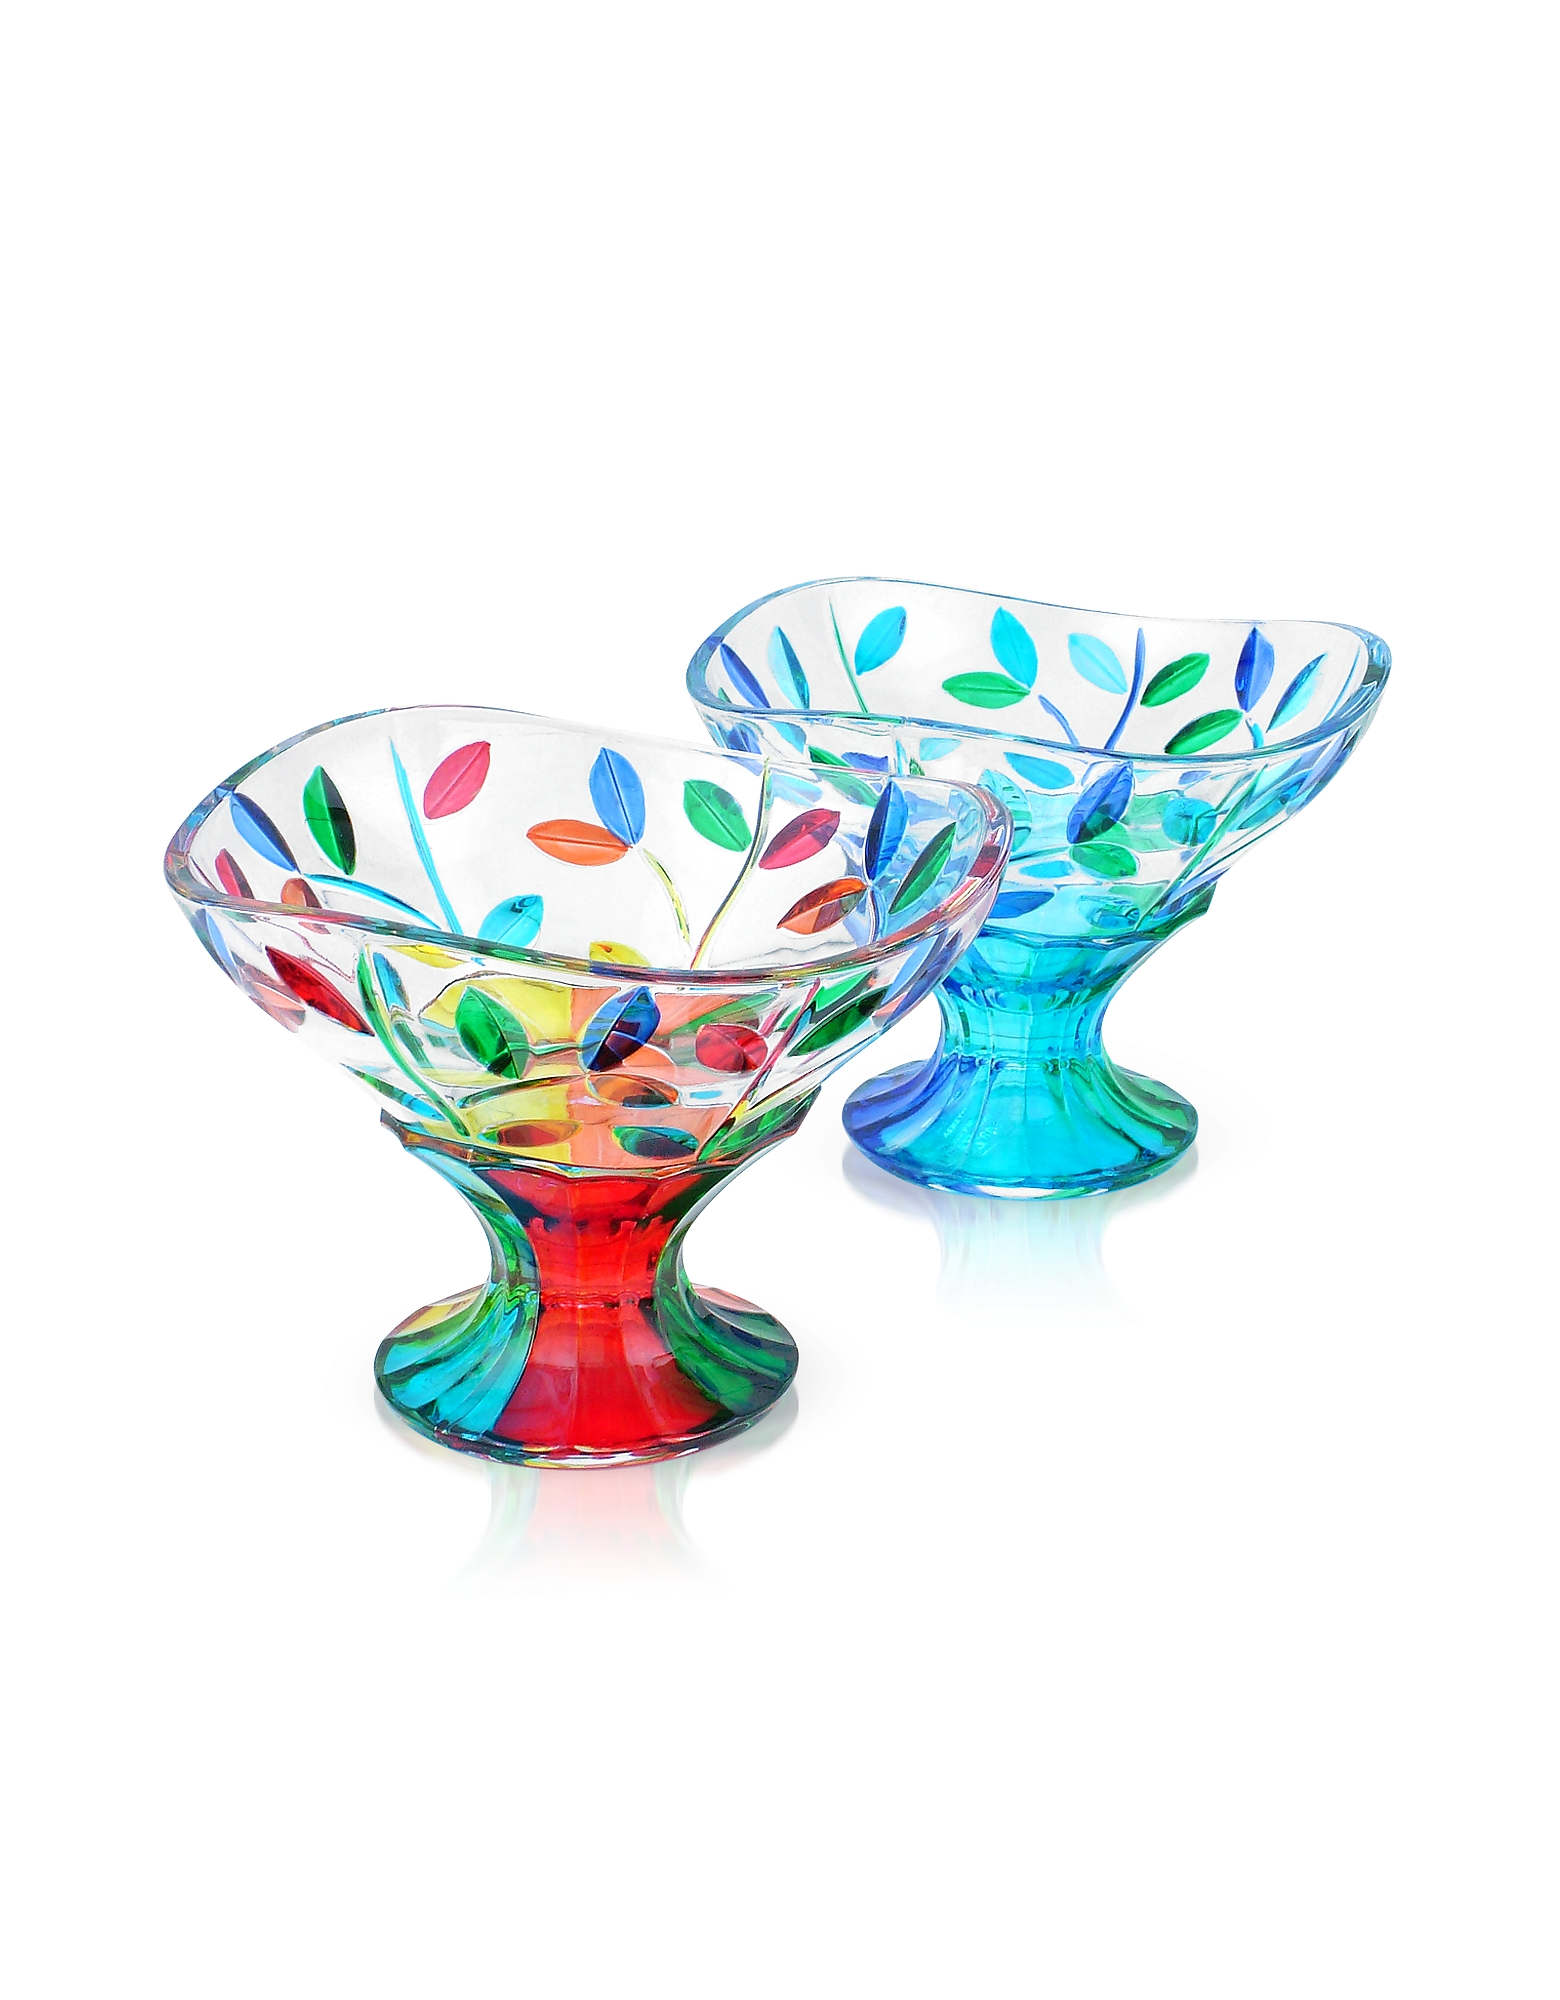 Due Zeta Kitchen & Dining, San Marco - Hand Decorated Murano Glass Dessert Bowl